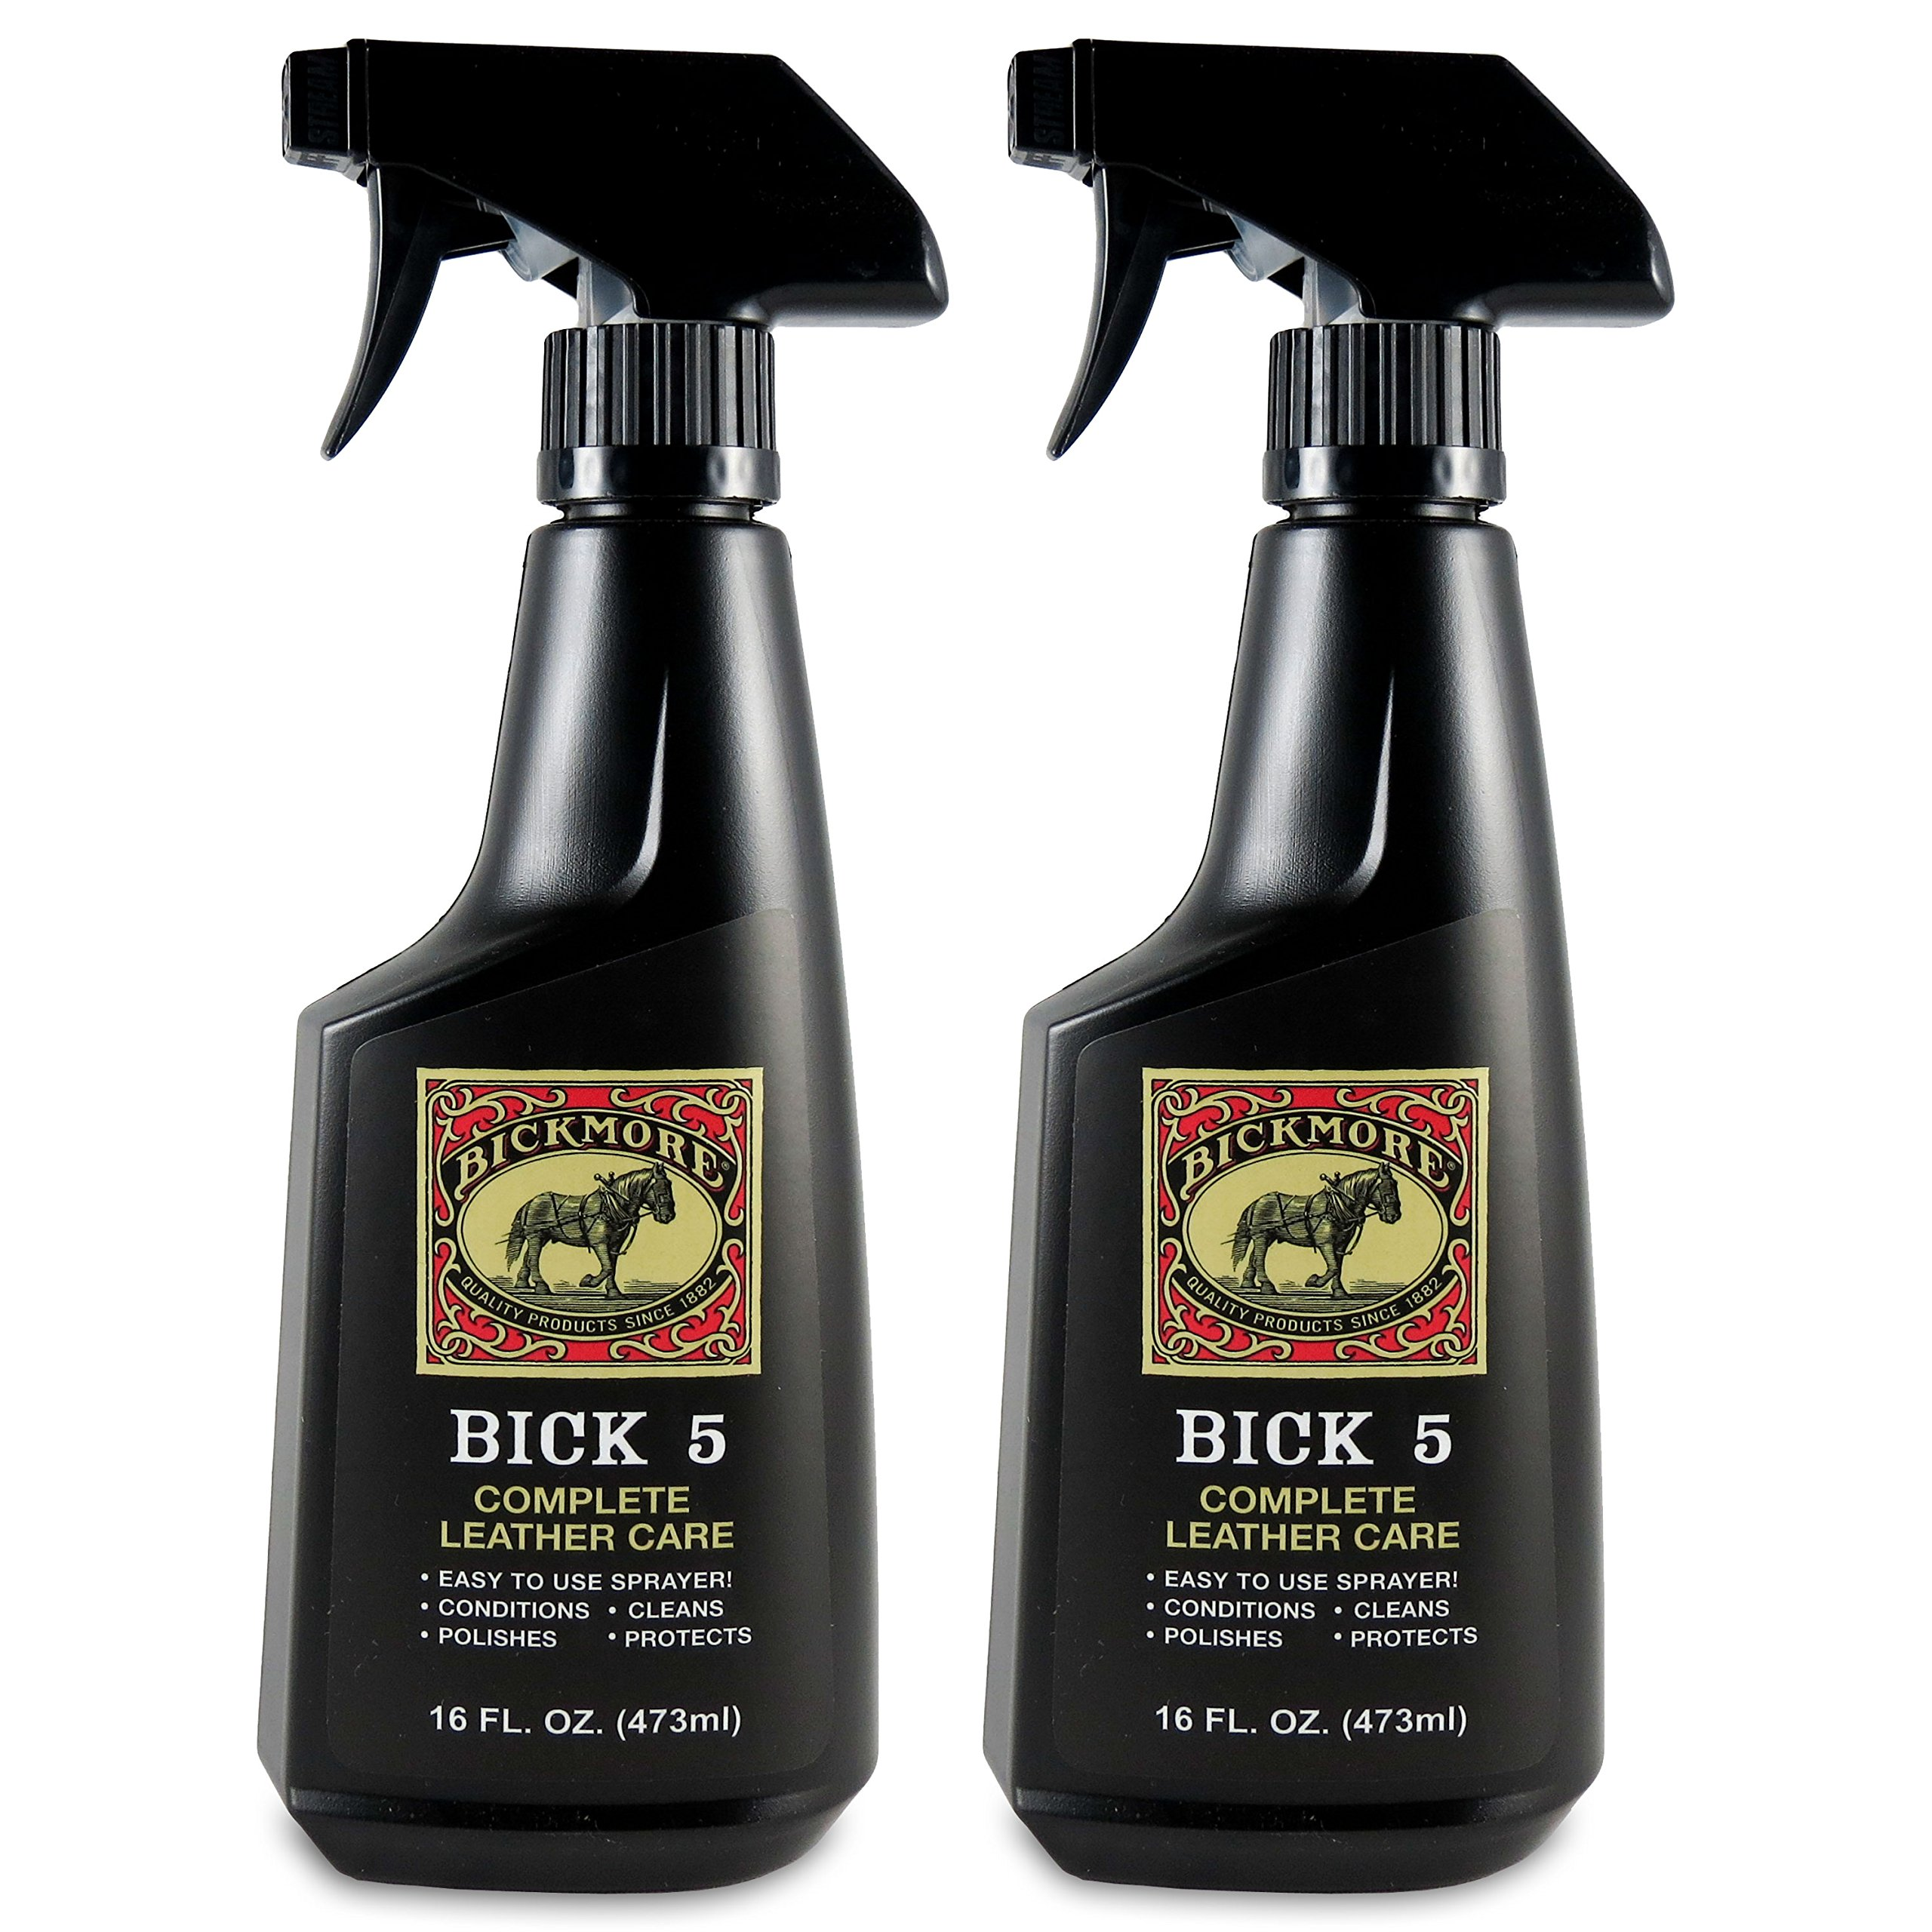 Bickmore Bick 5 Leather Cleaner & Conditioner 16oz Spray (2-Pack) Complete Leather Care